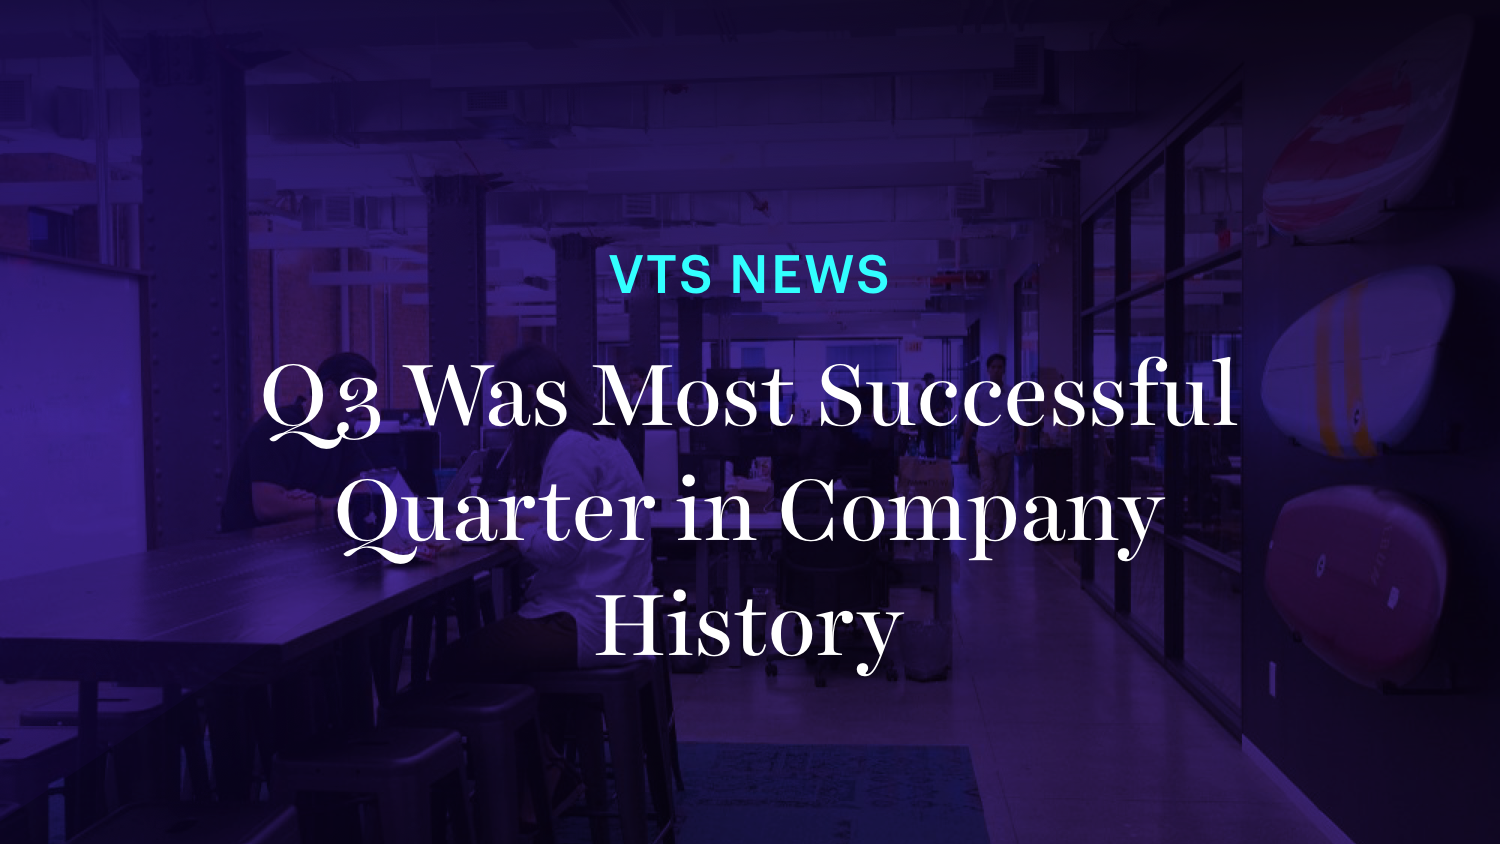 VTS' Q3 was most successful in company history with 9 billion square feet managed on leasing and asset platform